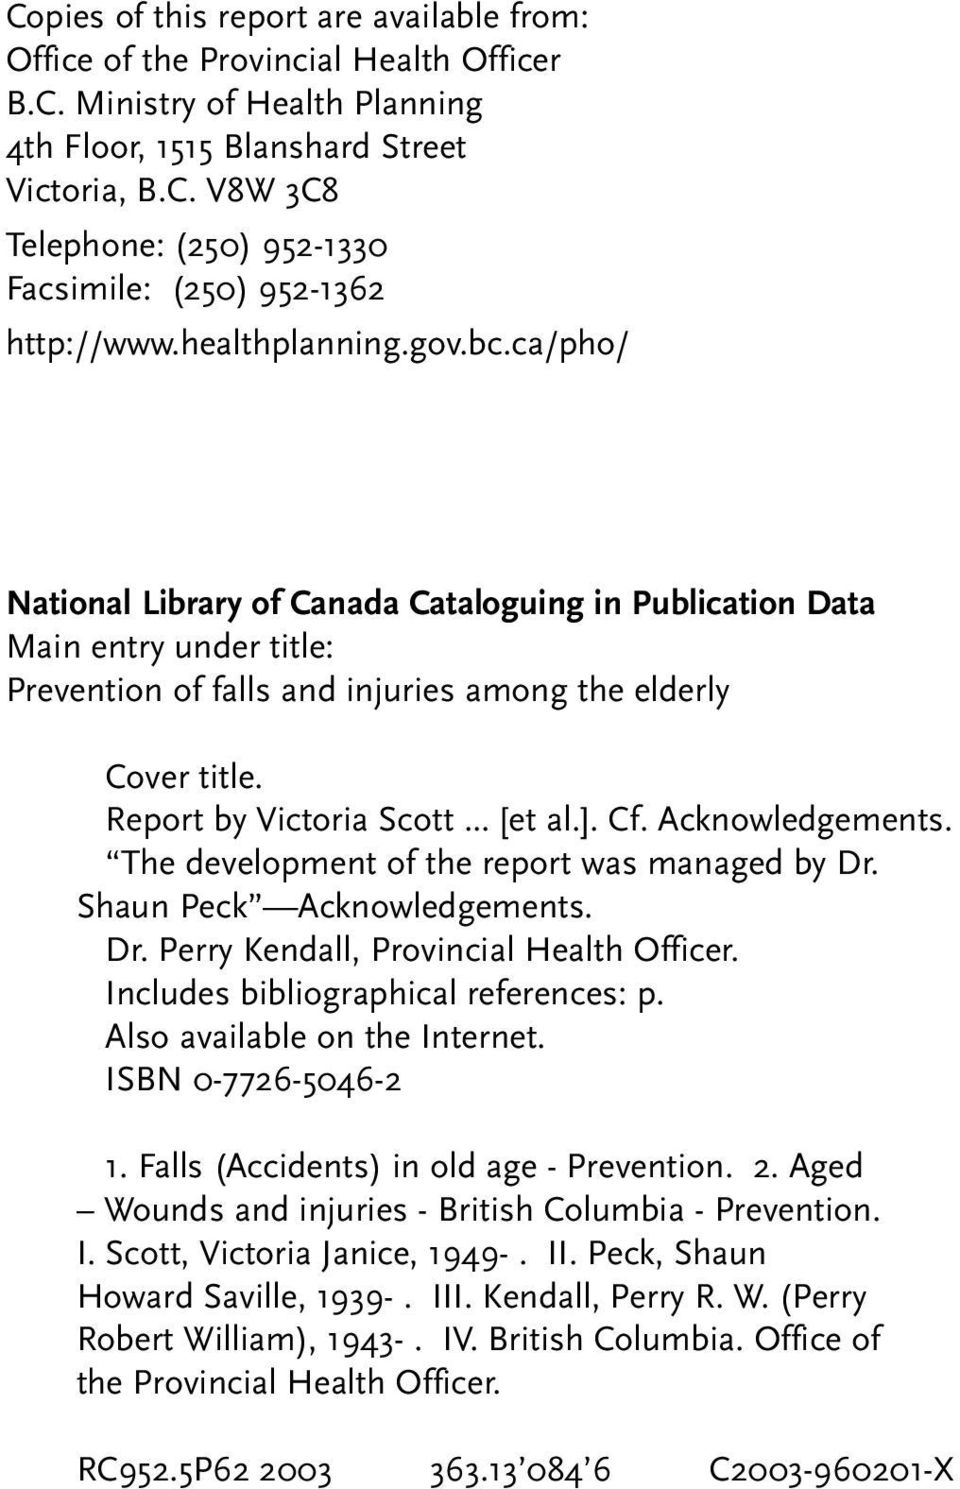 Report by Victoria Scott... [et al.]. Cf. Acknowledgements. The development of the report was managed by Dr. Shaun Peck Acknowledgements. Dr. Perry Kendall, Provincial Health Officer.